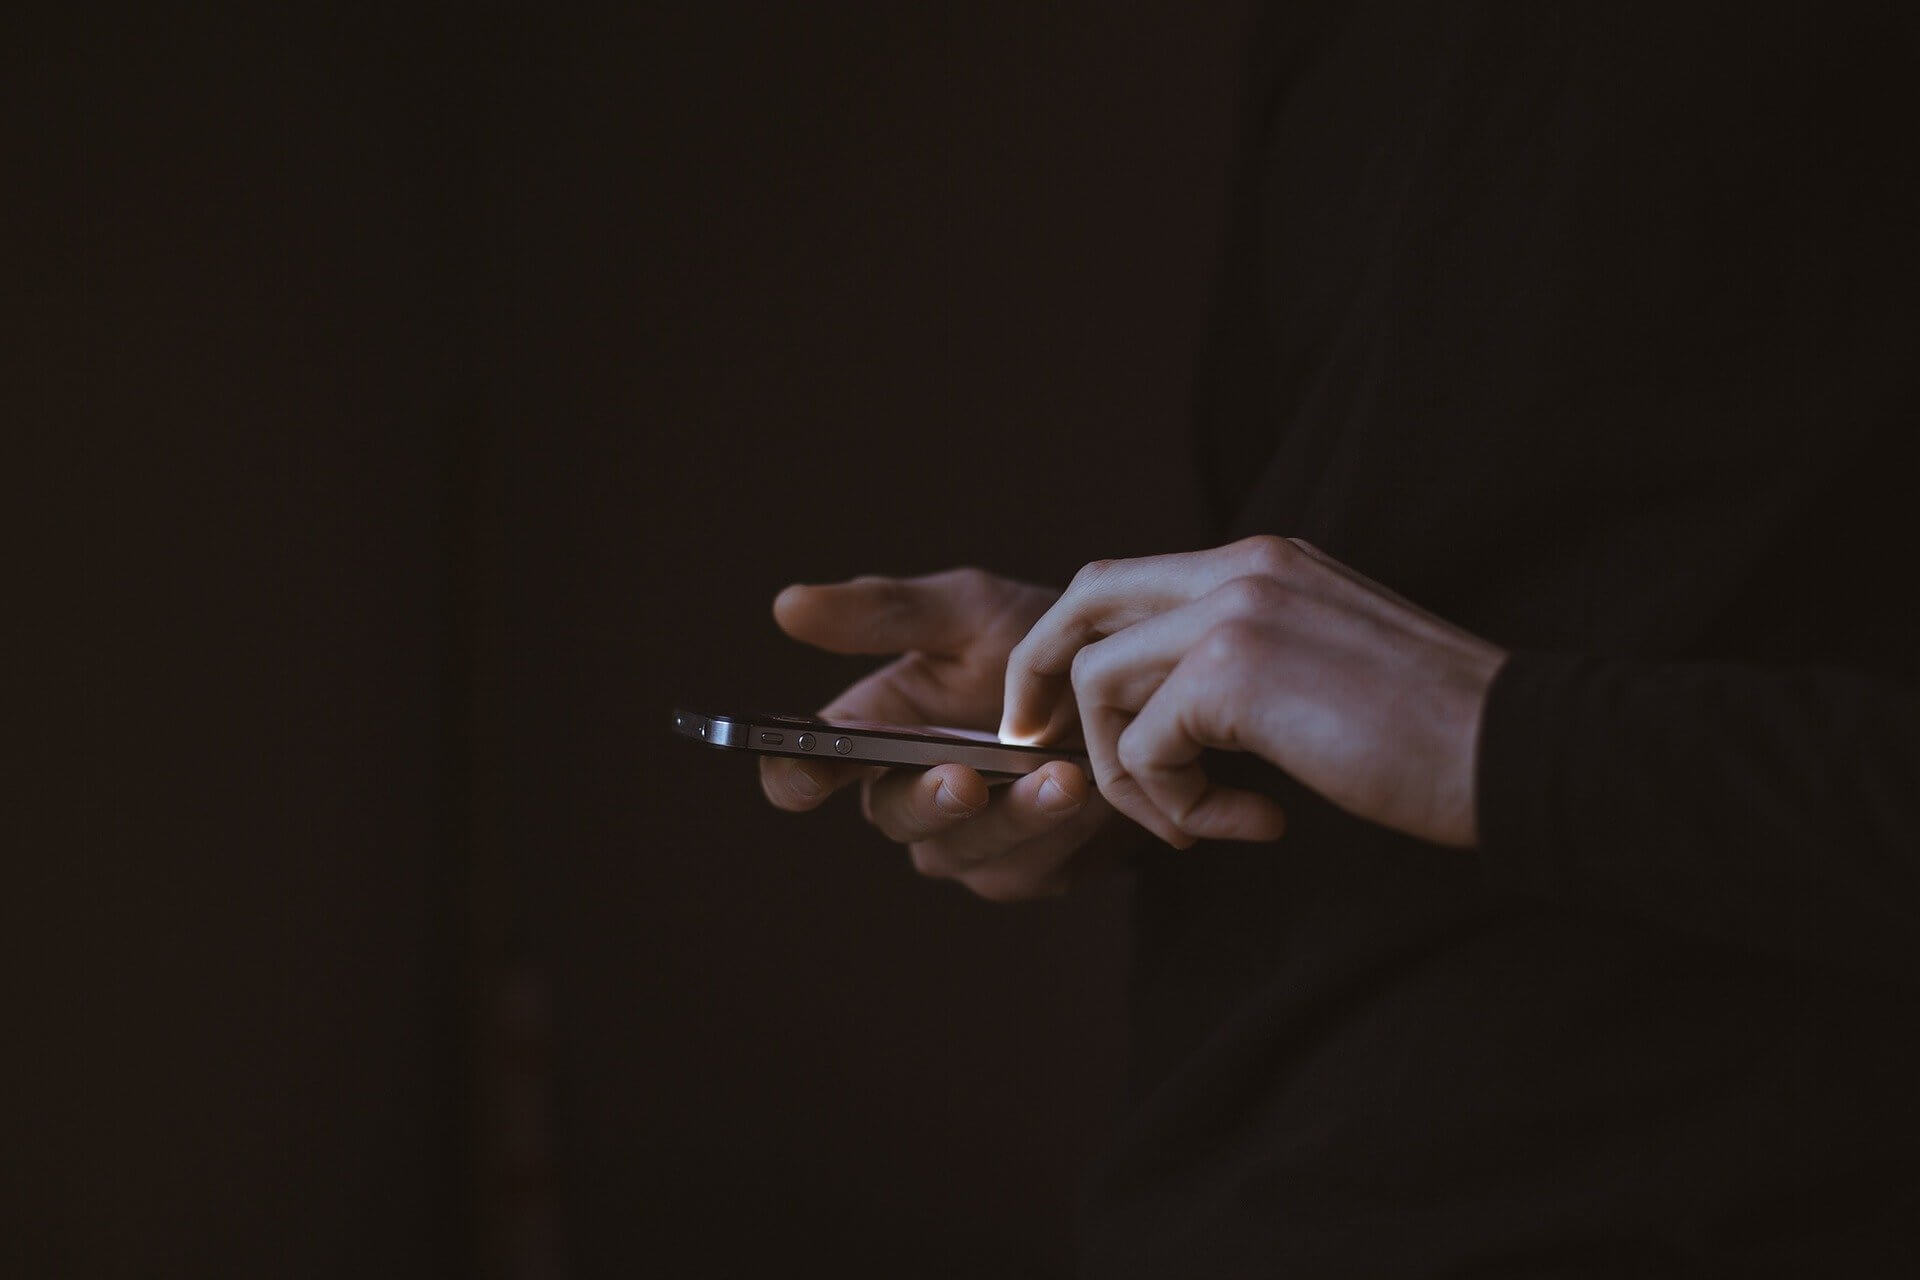 How to stop phone spoofing